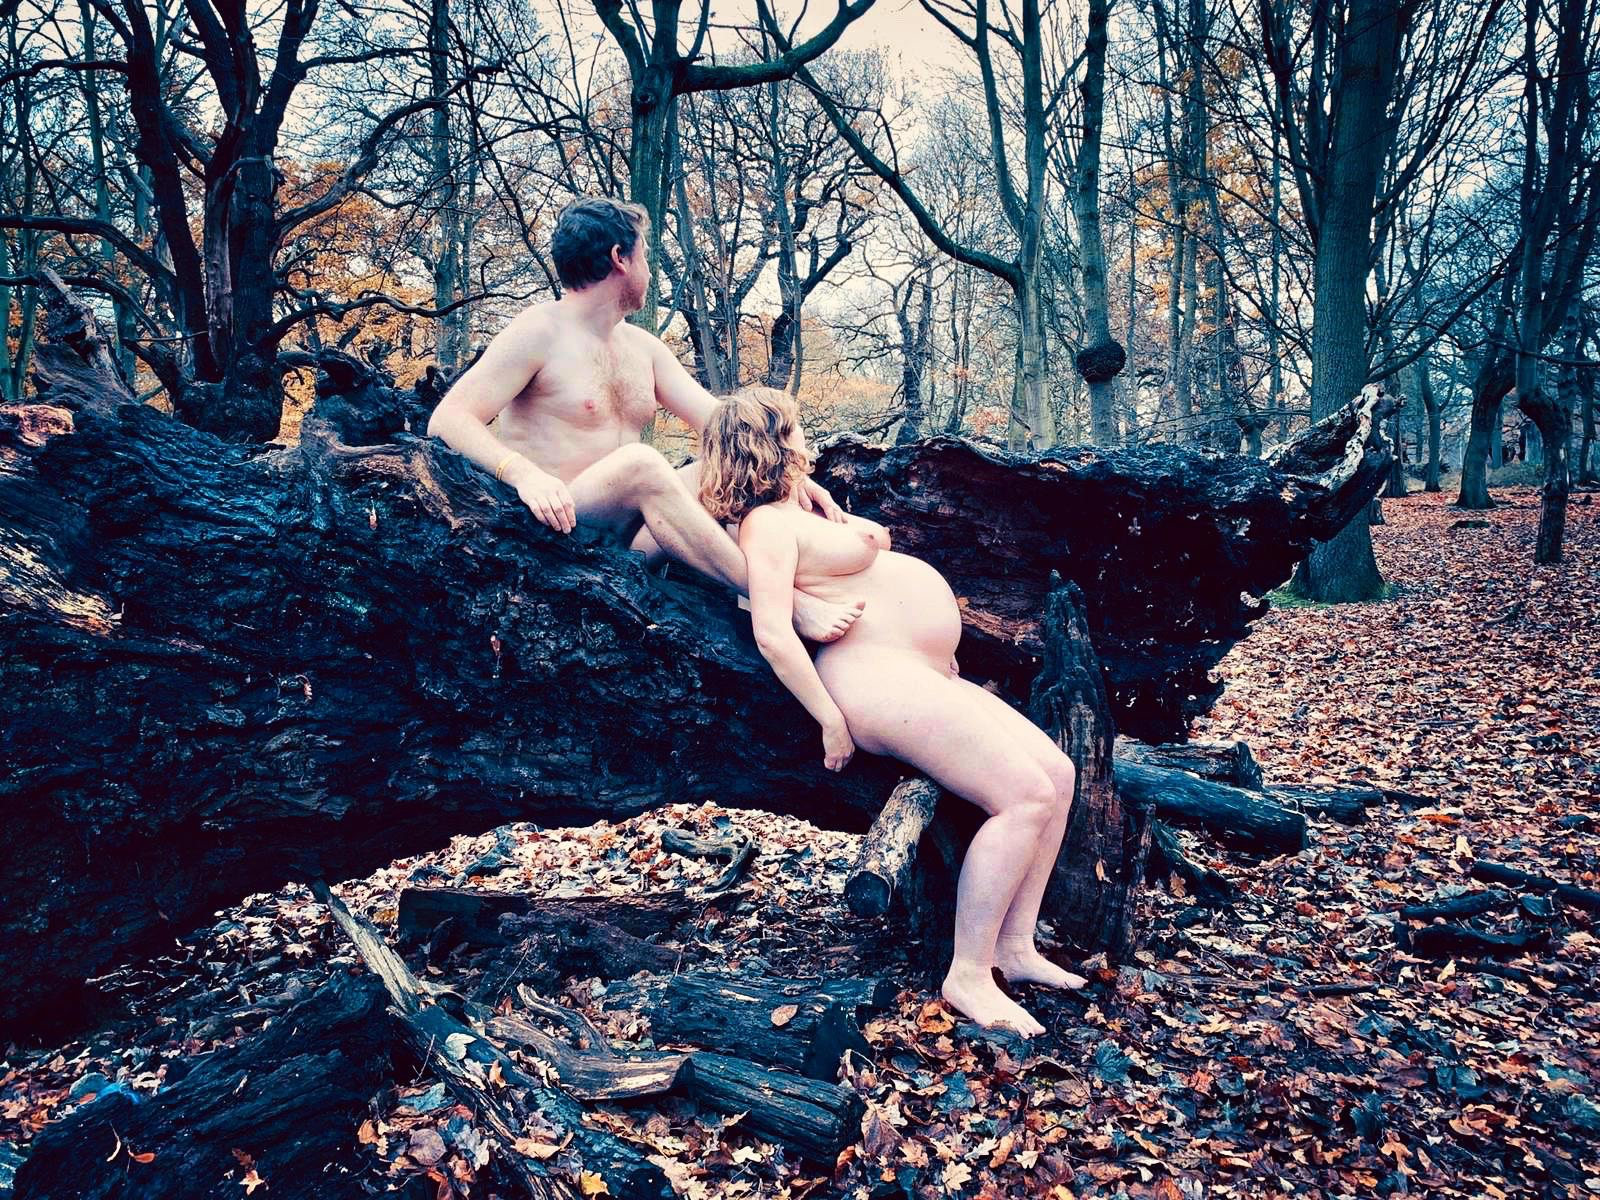 EA and I are sat naked on a large log in the woods, in profile and facing away